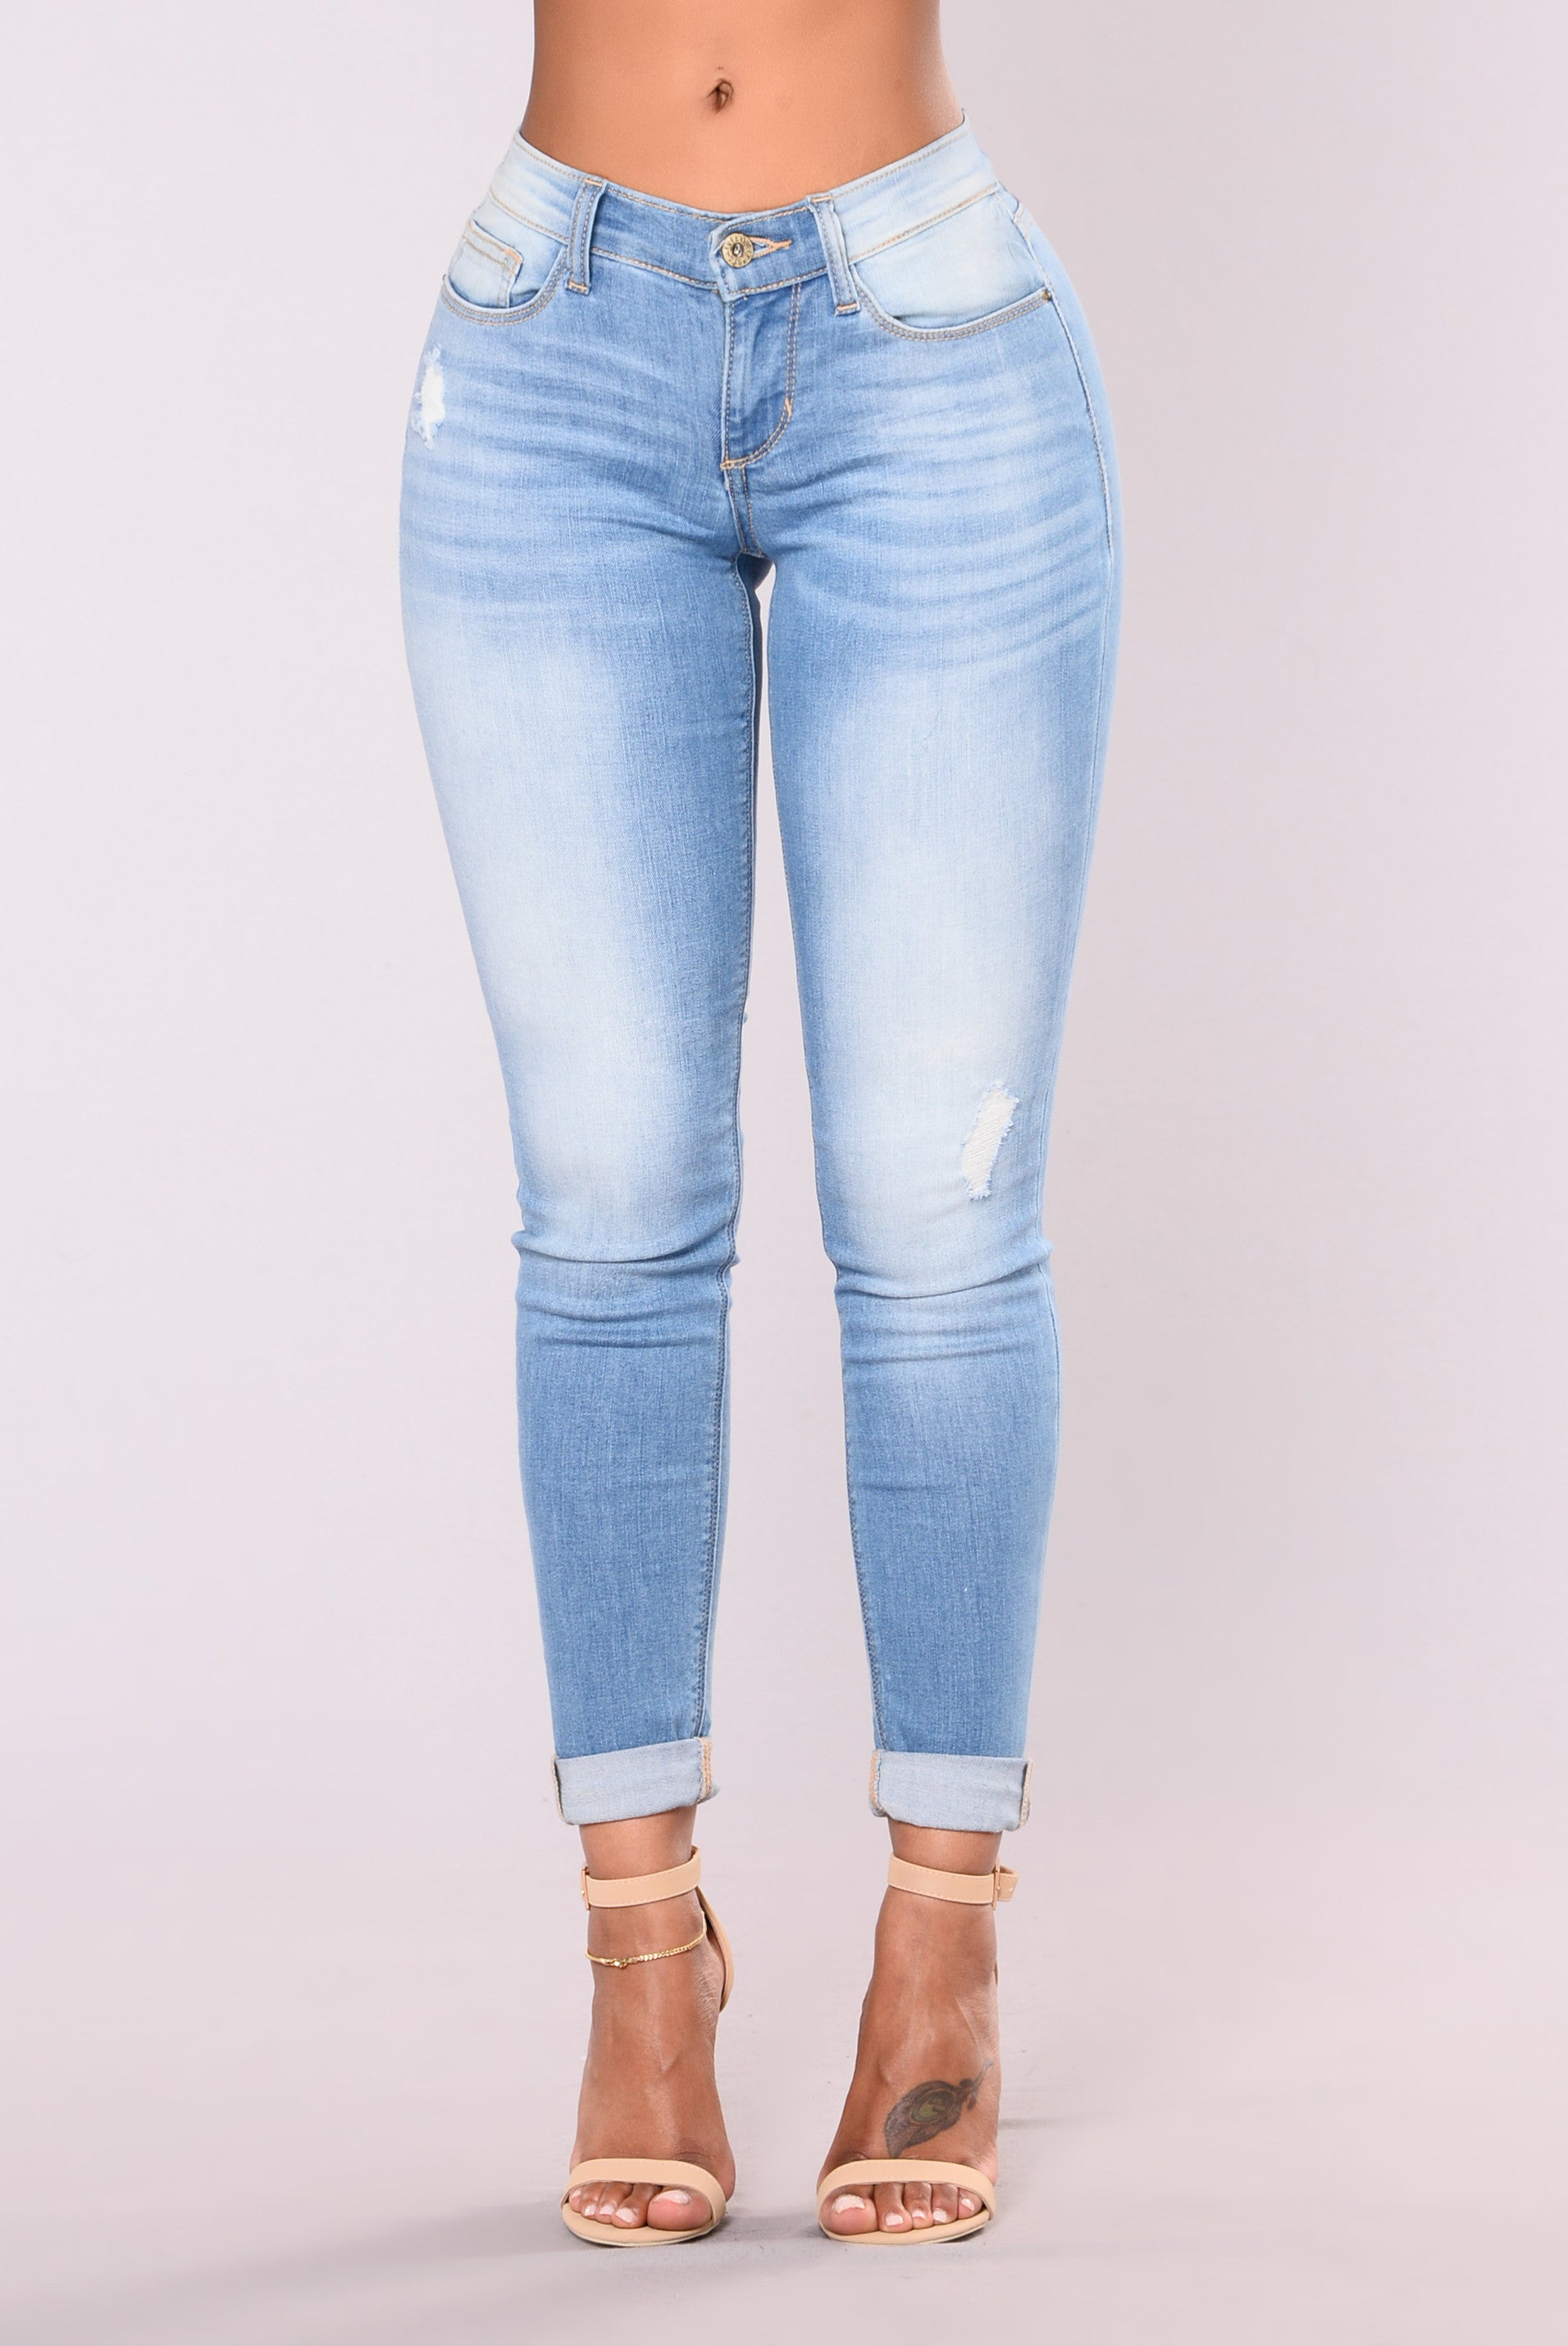 Low rise light blue skinny jeans